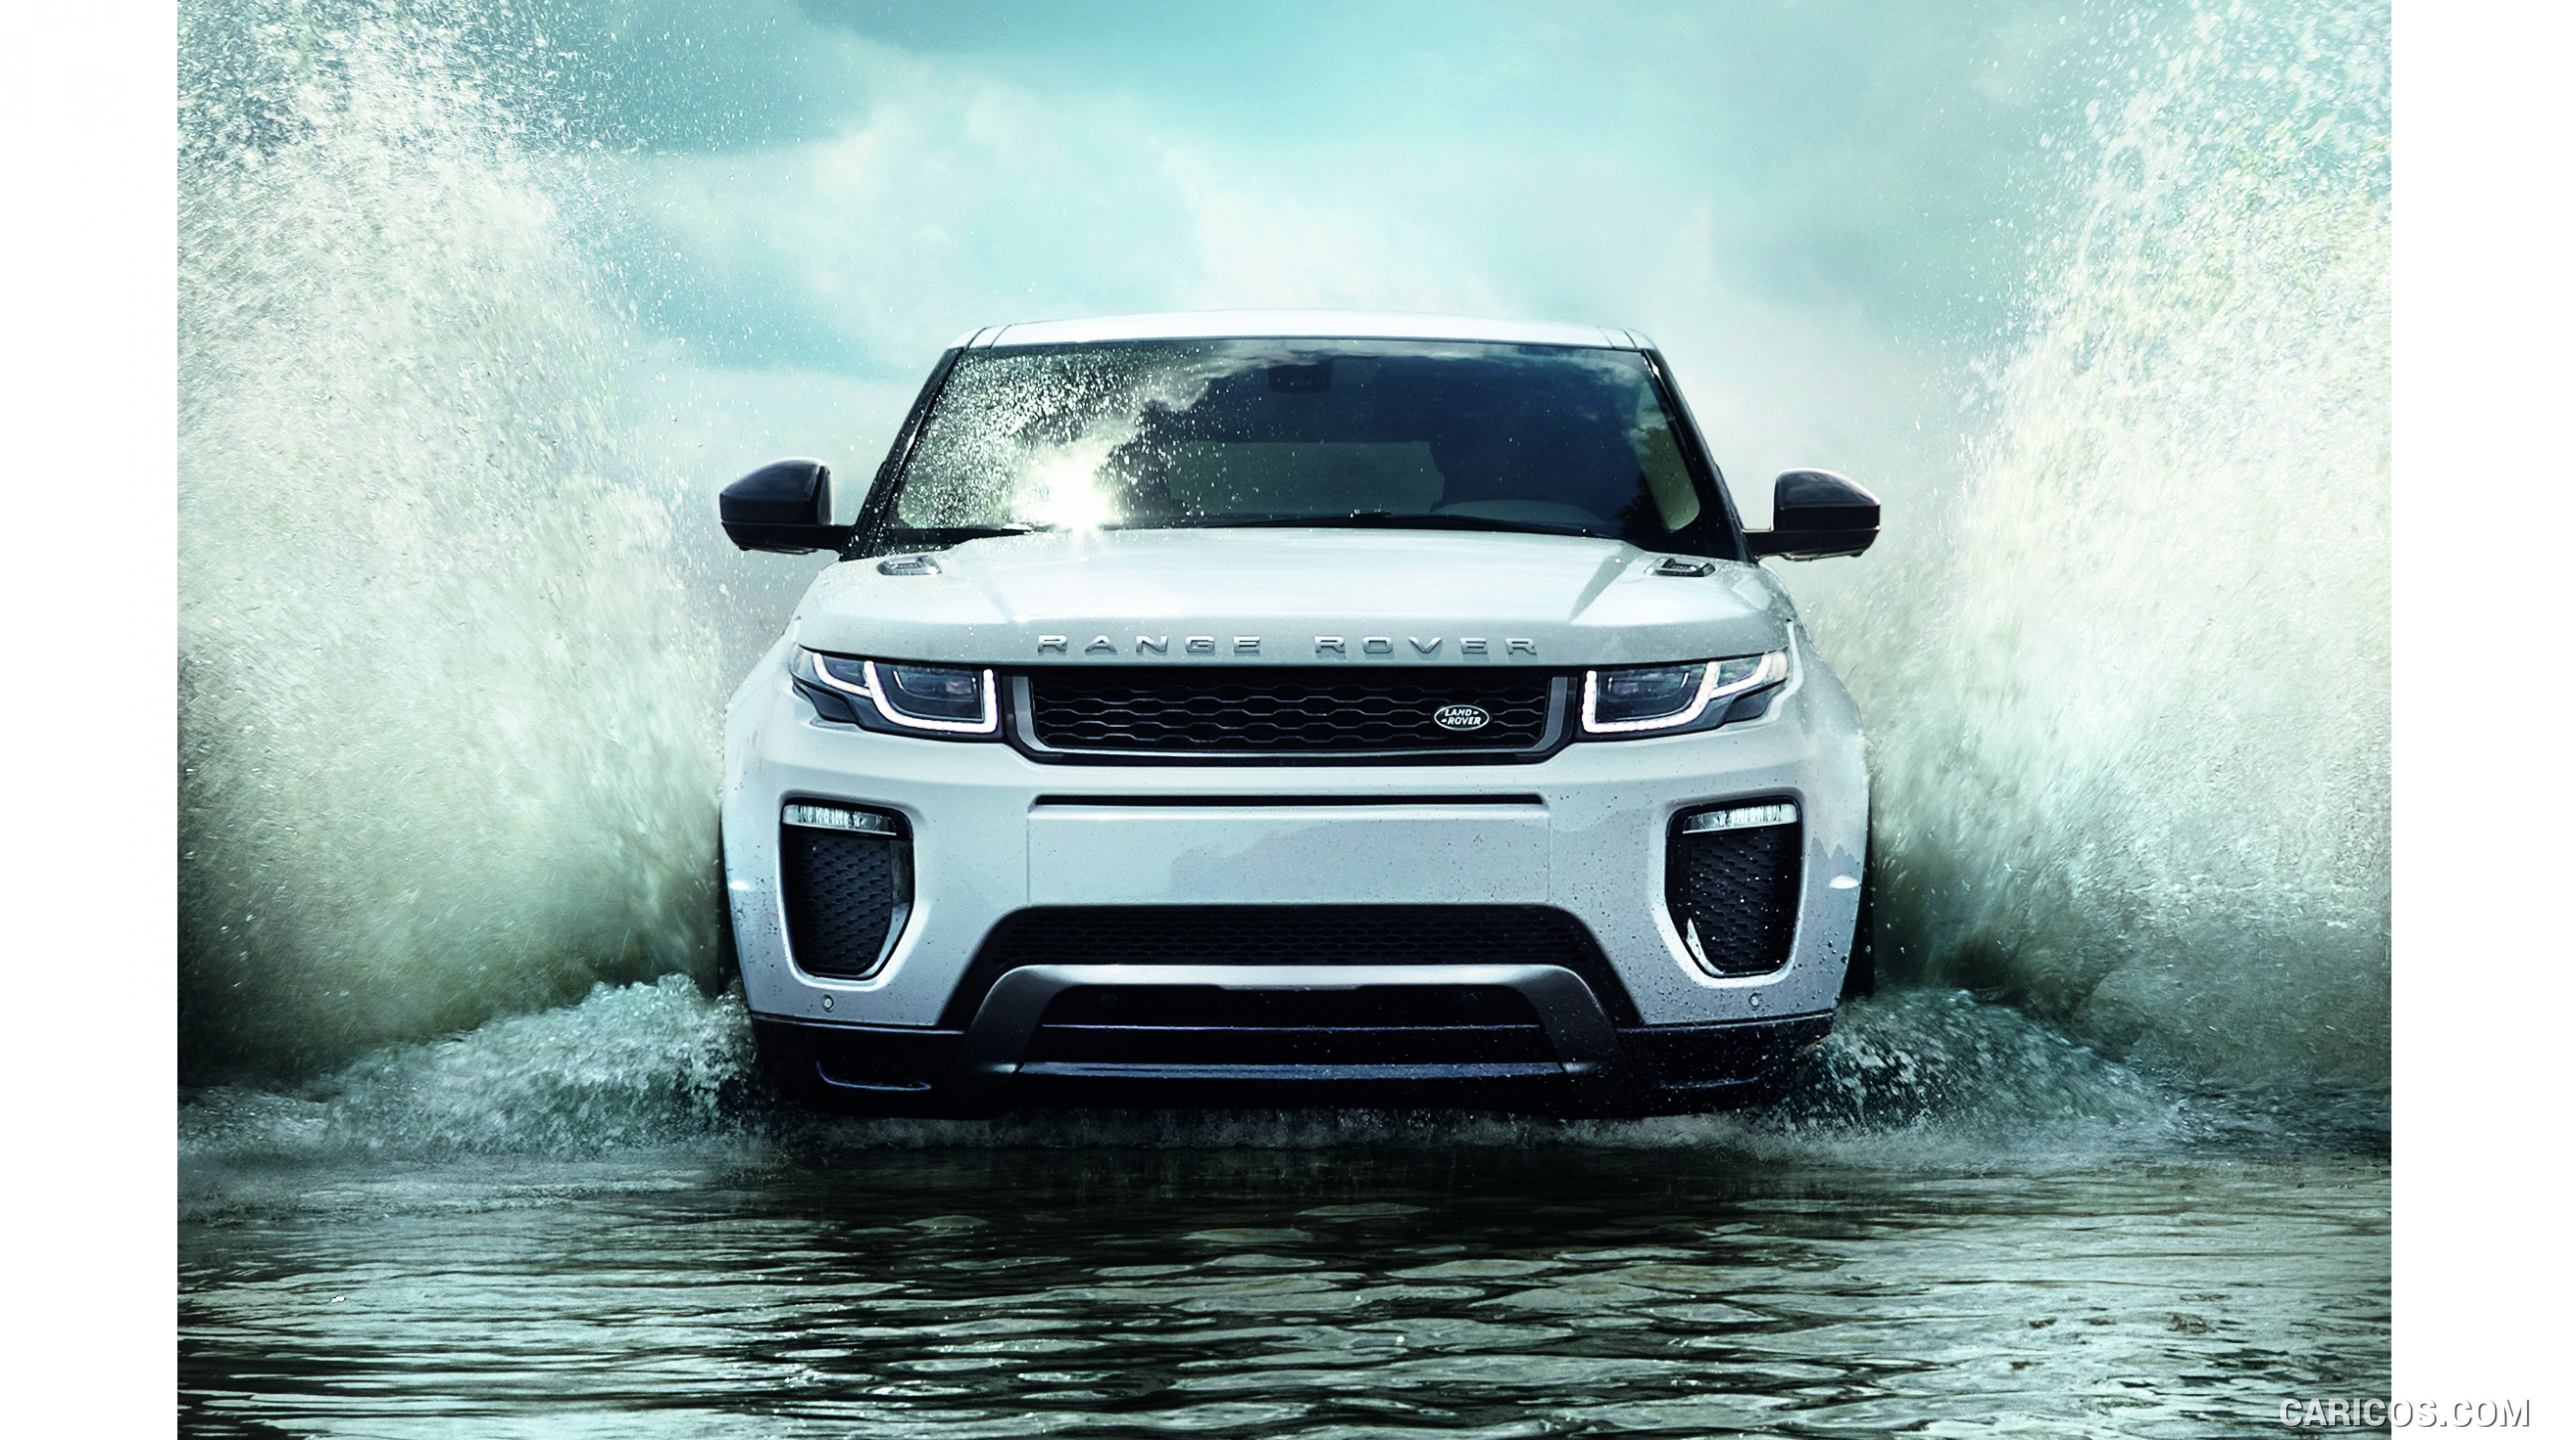 2560x1440 - Range Rover Wallpapers 5